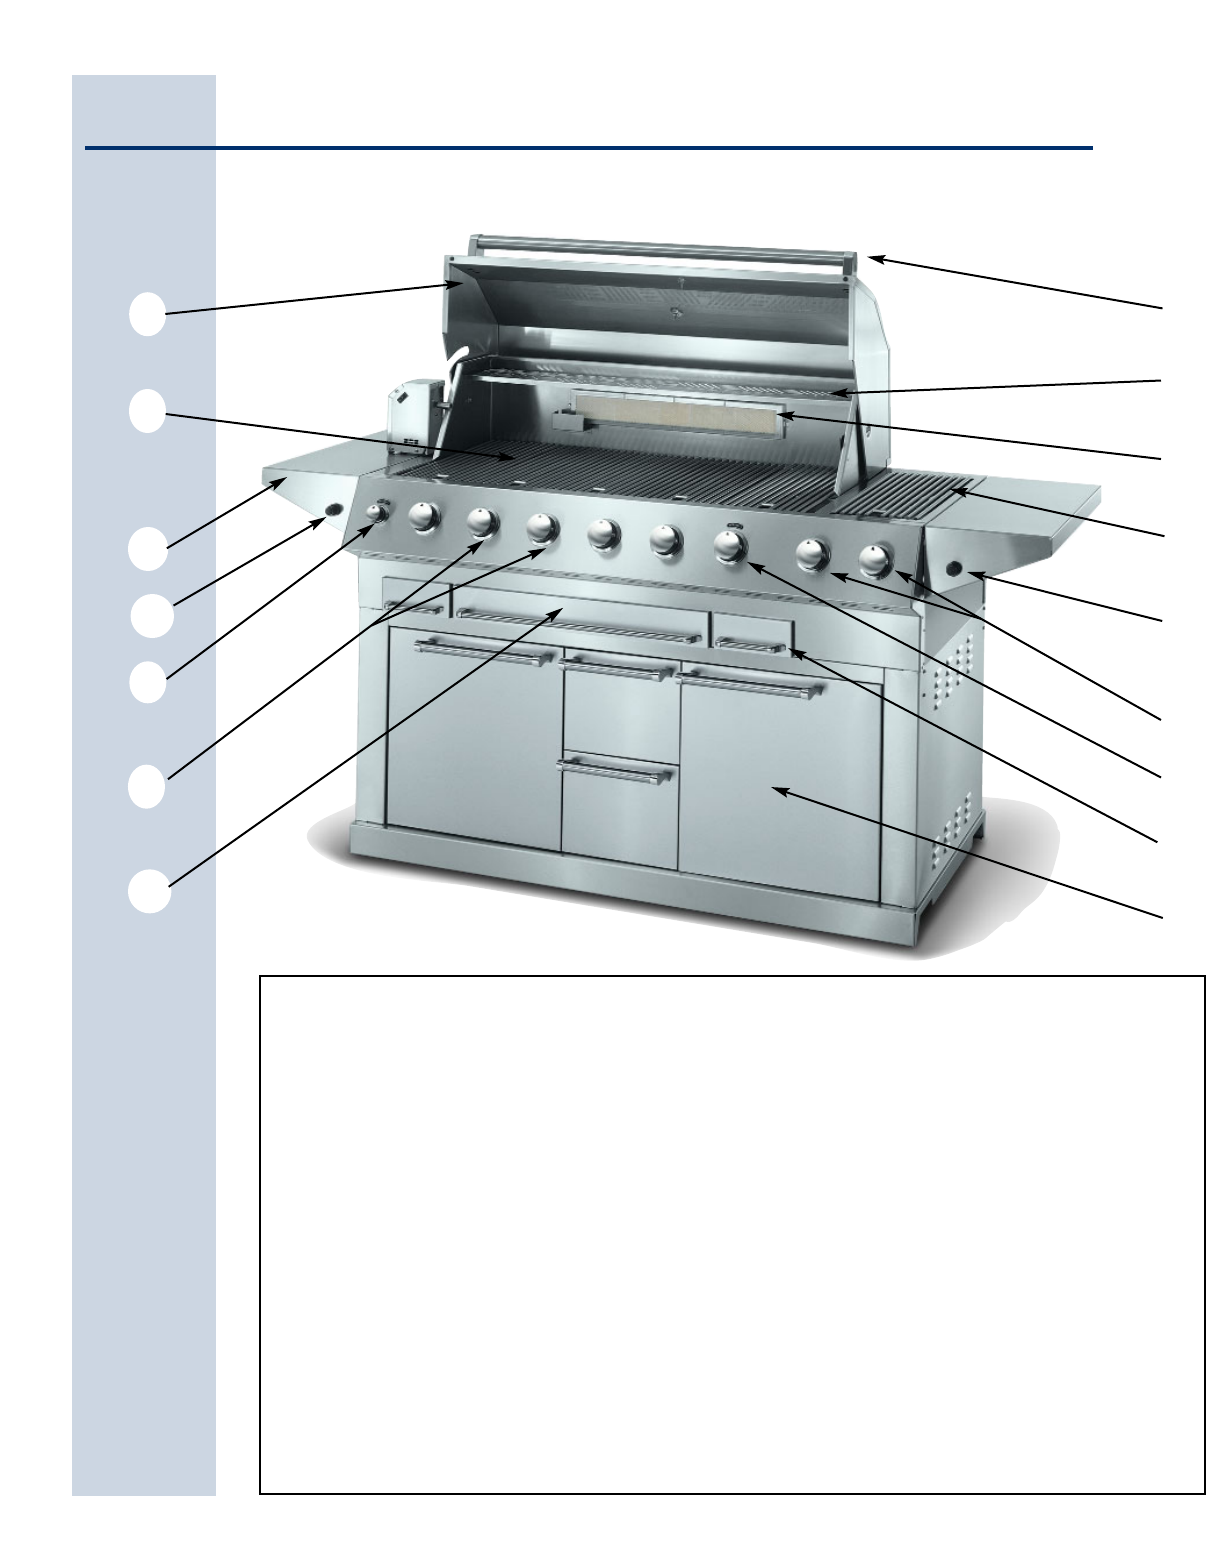 page 4 of electrolux gas grill 57 stainless steel gas grill user rh outdoorcooking manualsonline com 51-Inch Electrolux Gas Grill Electrolux Outdoor Grill